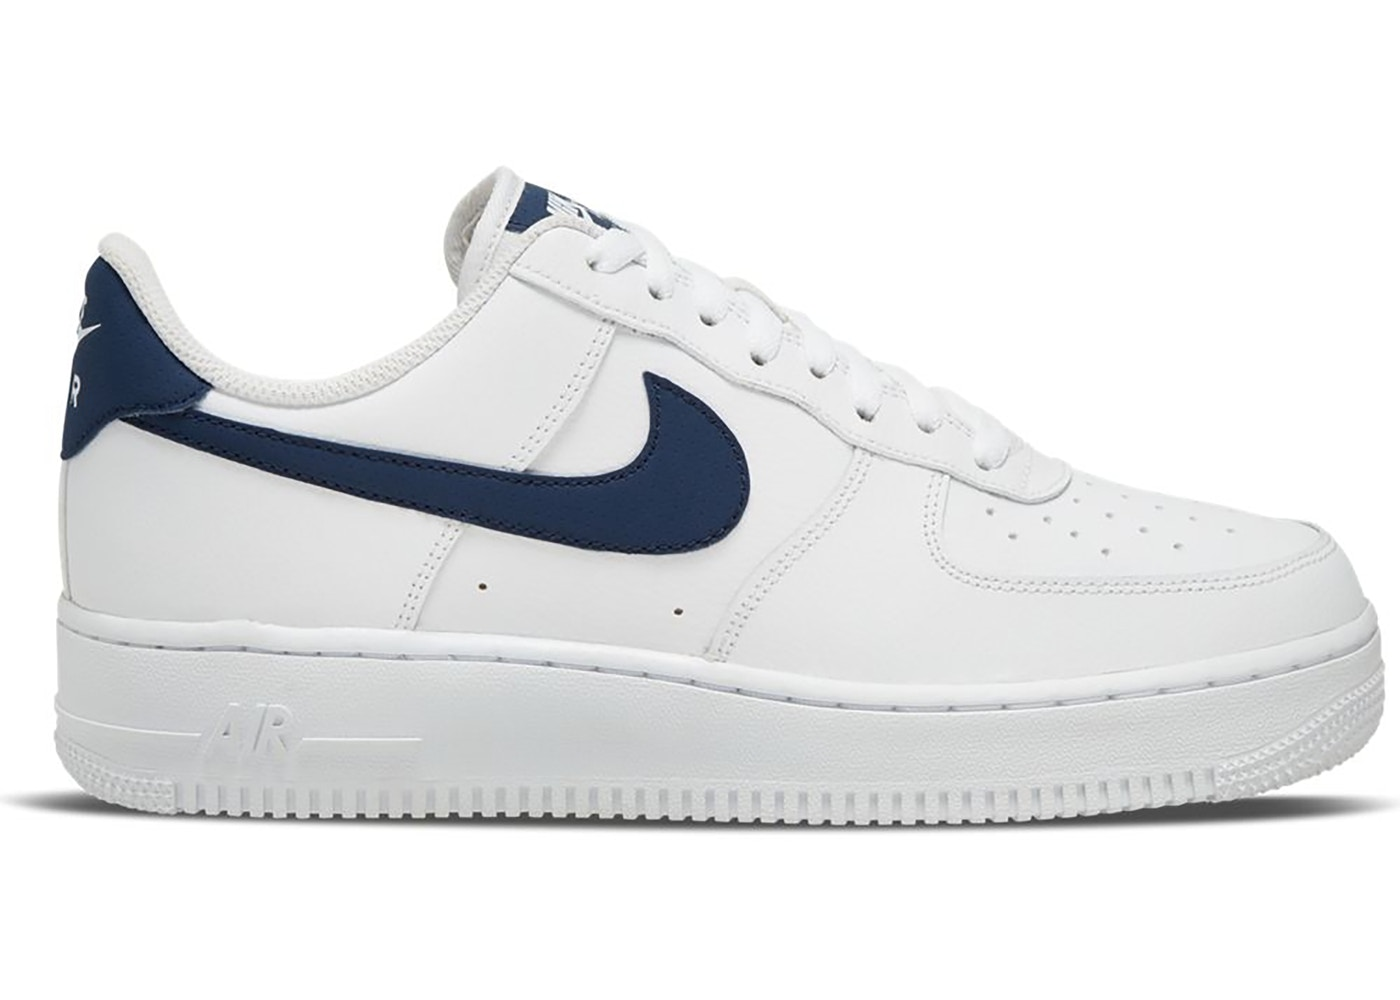 Nike Air Force 1 Low White Midnight Navy (2020) - CJ1607-100